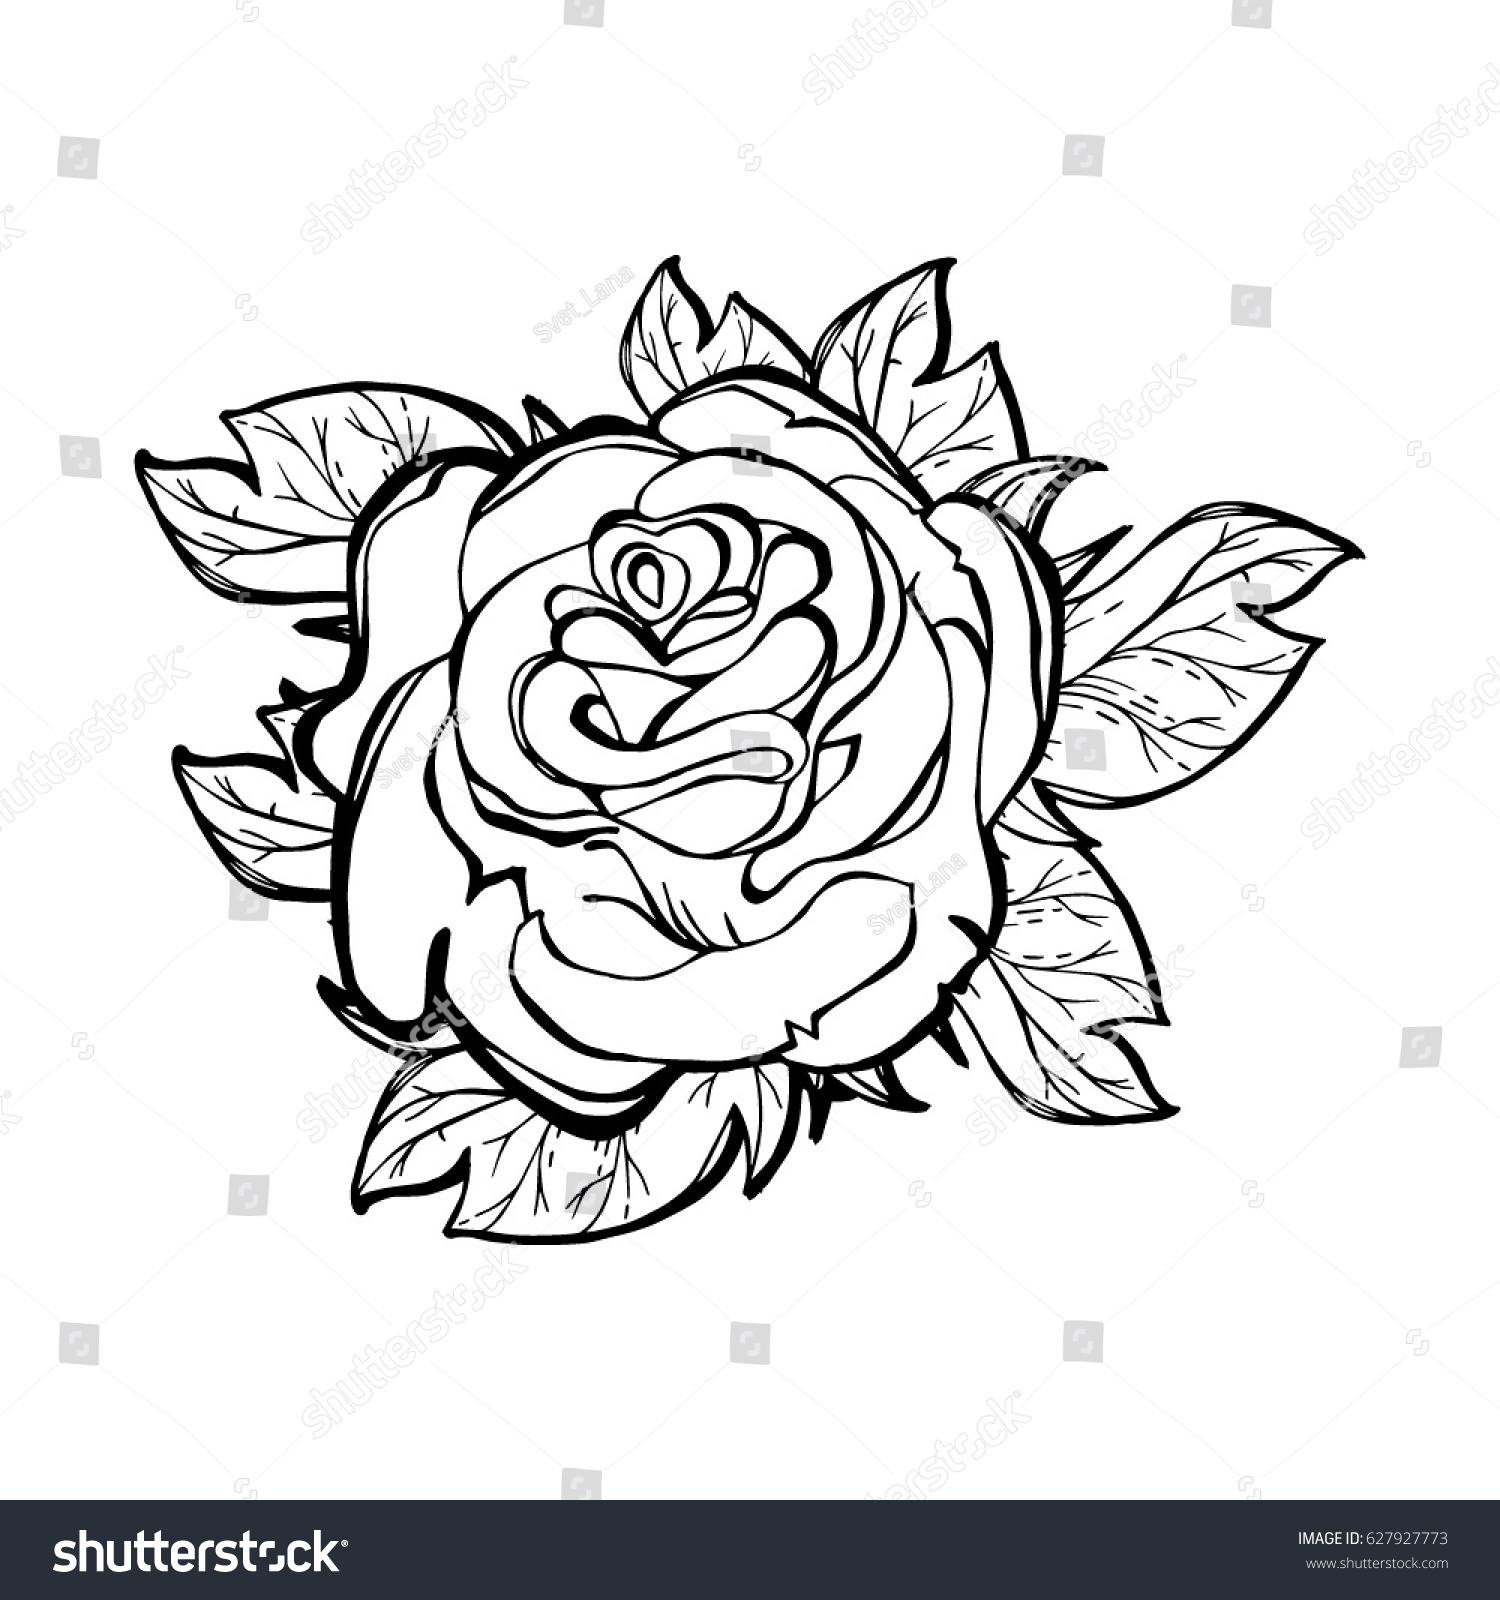 vector illustration of a stylized rose isolated tattoo textile printing image coloring - Coloring Book Printing